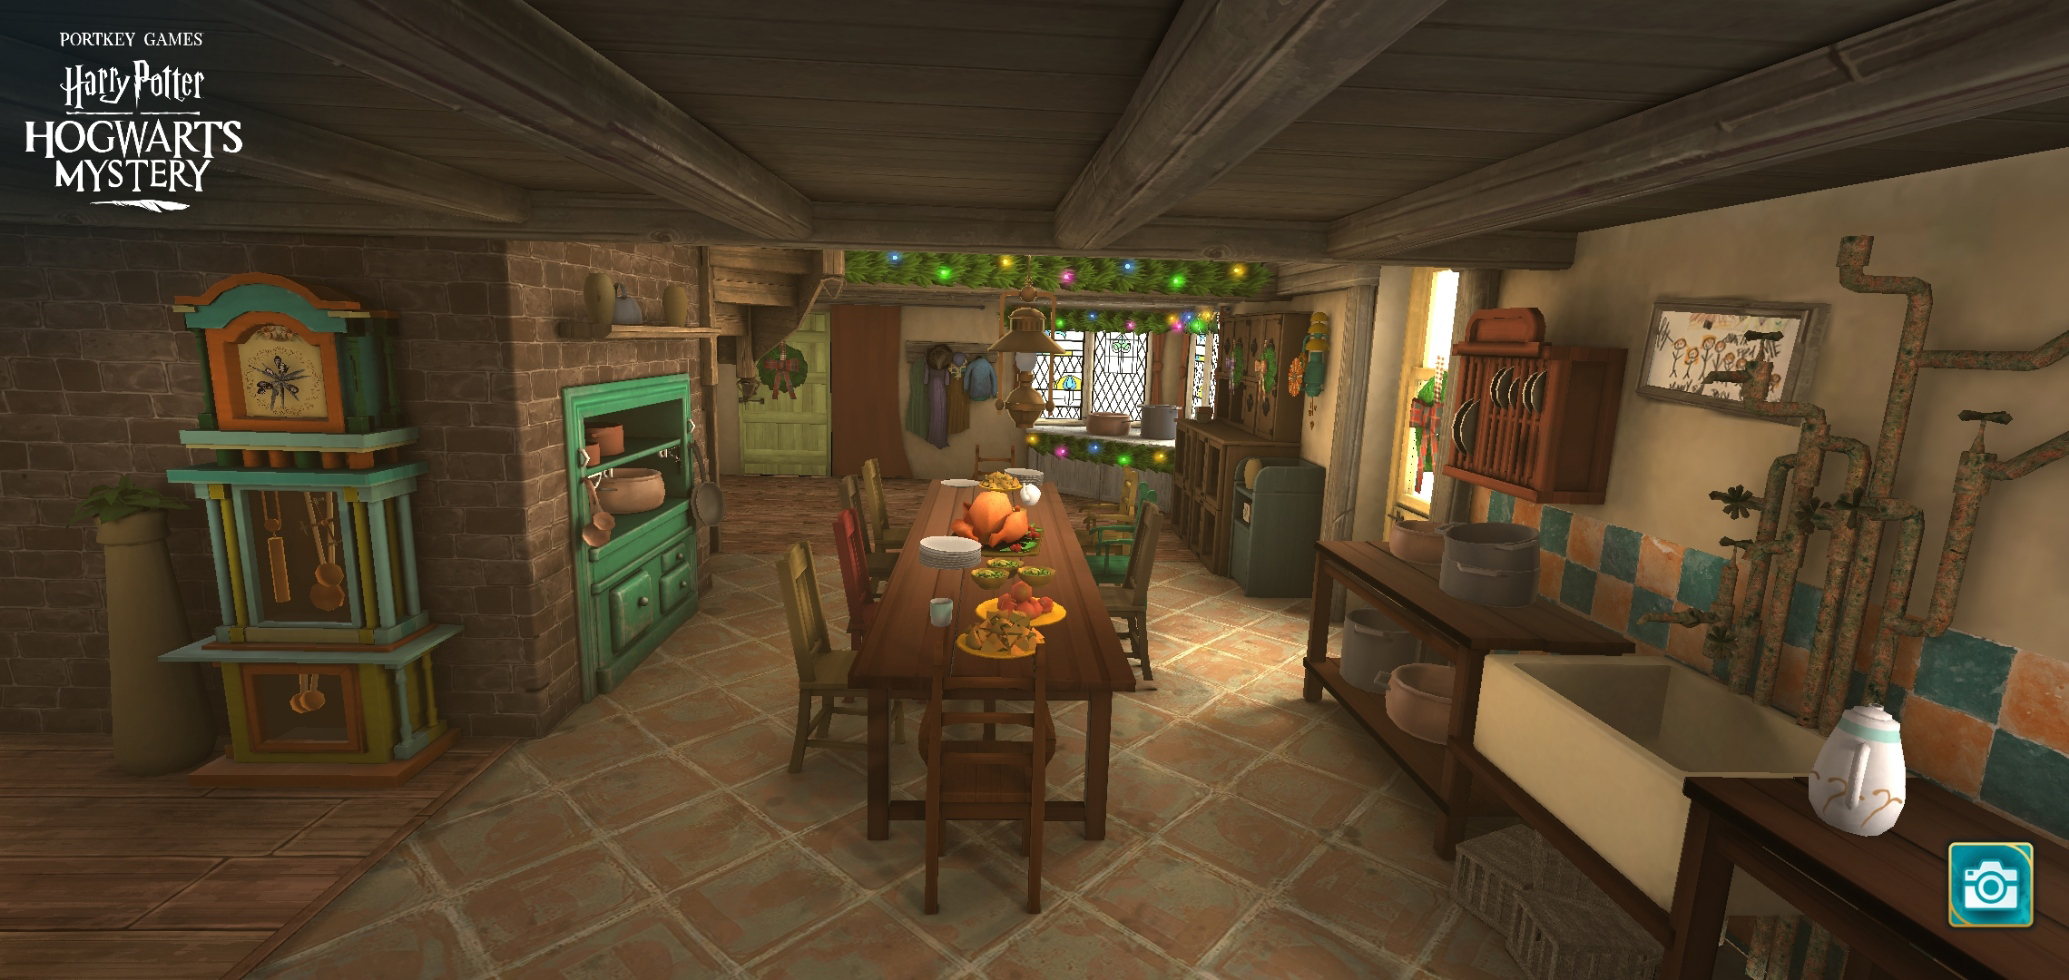 "A Molly Weasley feast awaits in the kitchen of the Burrow in ""Harry Potter: Hogwarts Mystery""."